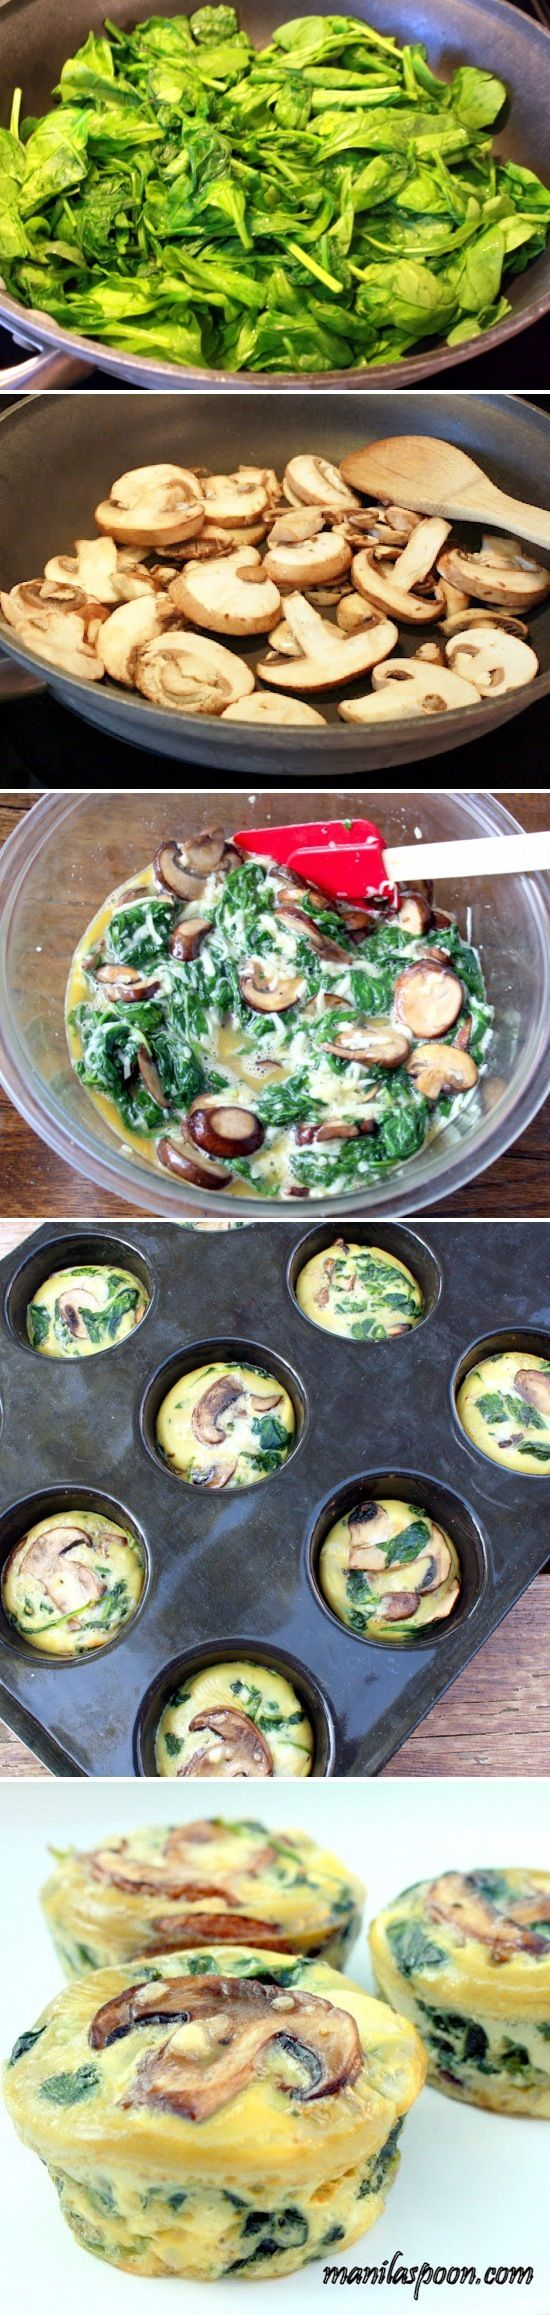 Spinach Quiche Cups - The spinach quiche is truly a healthy low-carb and gluten-free breakfast. Try it!